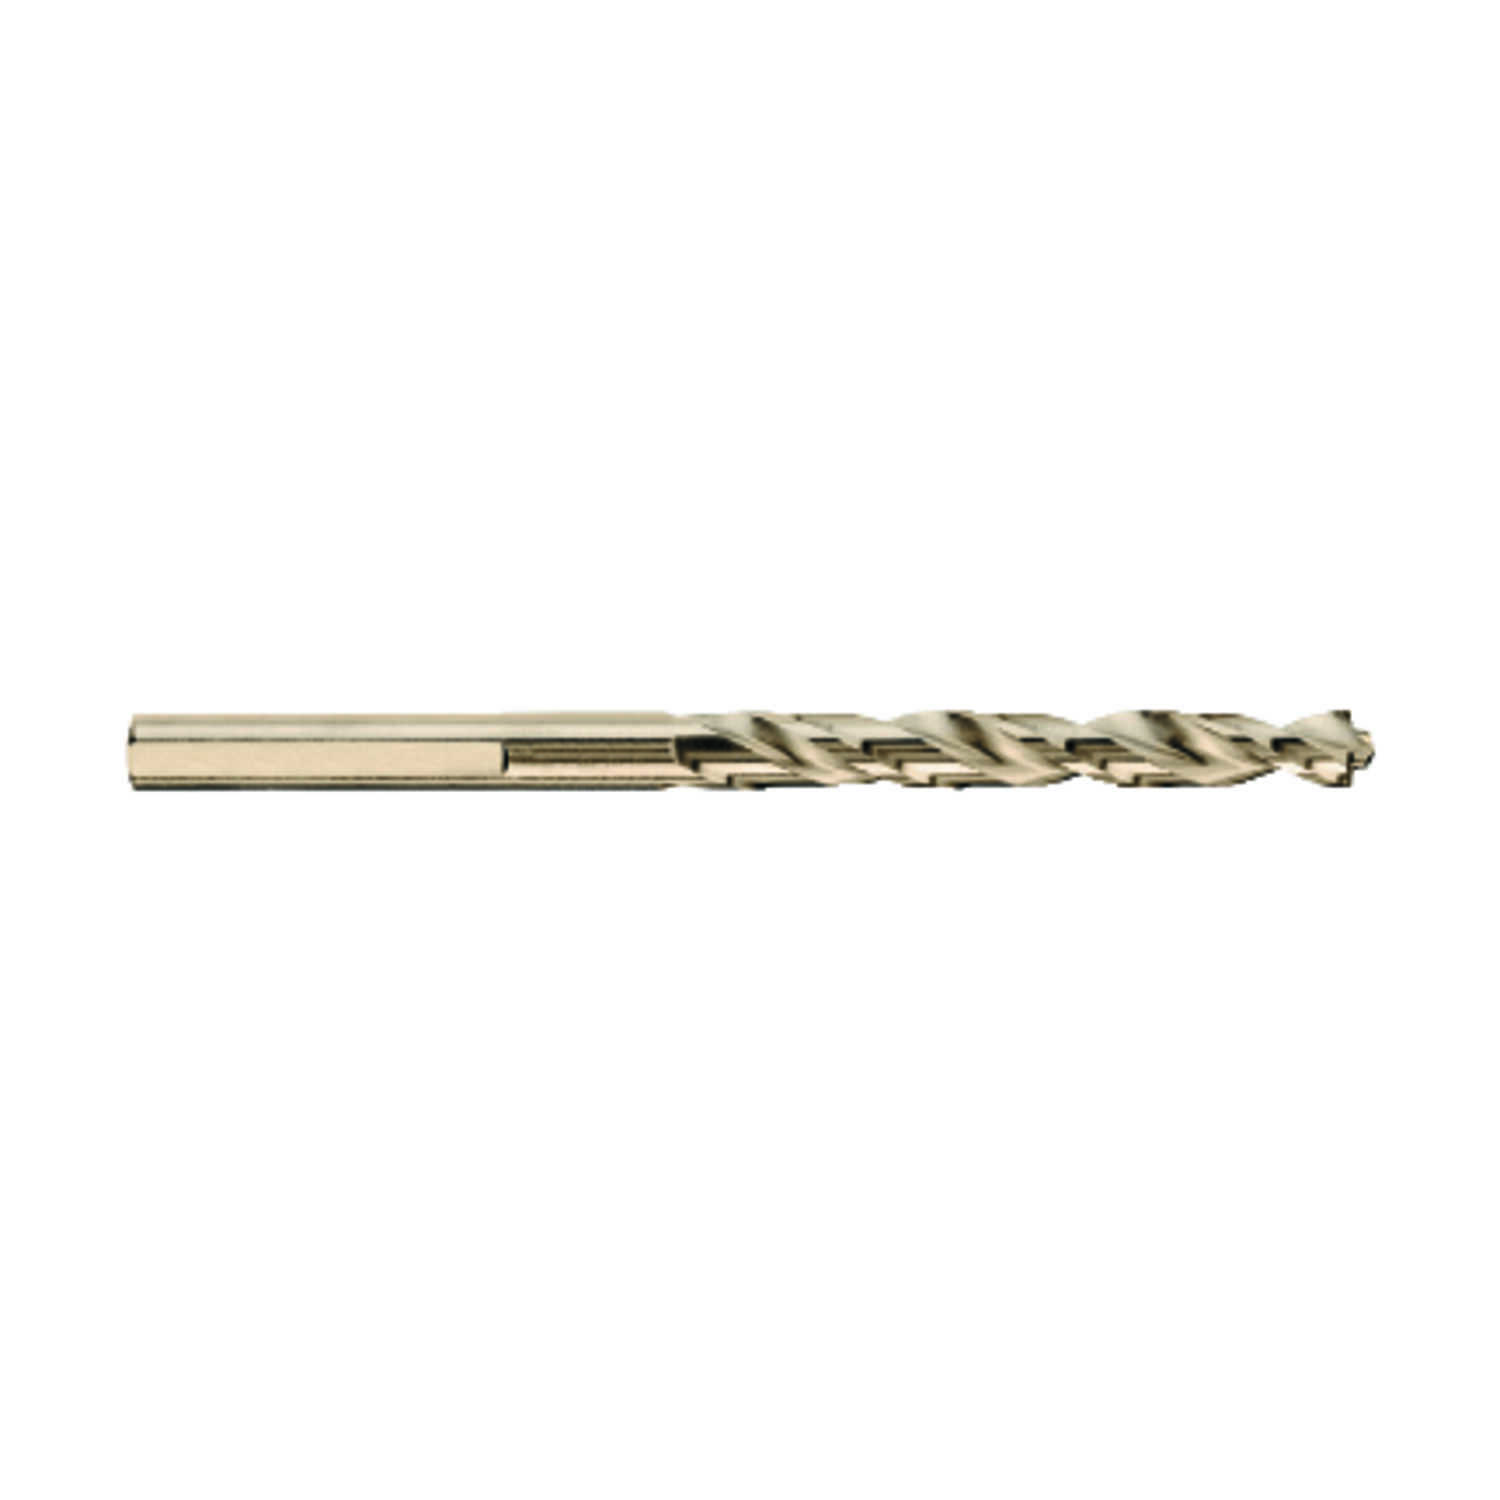 DeWalt  1/8 in. Dia. x 2-3/4 in. L High Speed Steel  2 pc. Straight Shank  Split Point Drill Bit